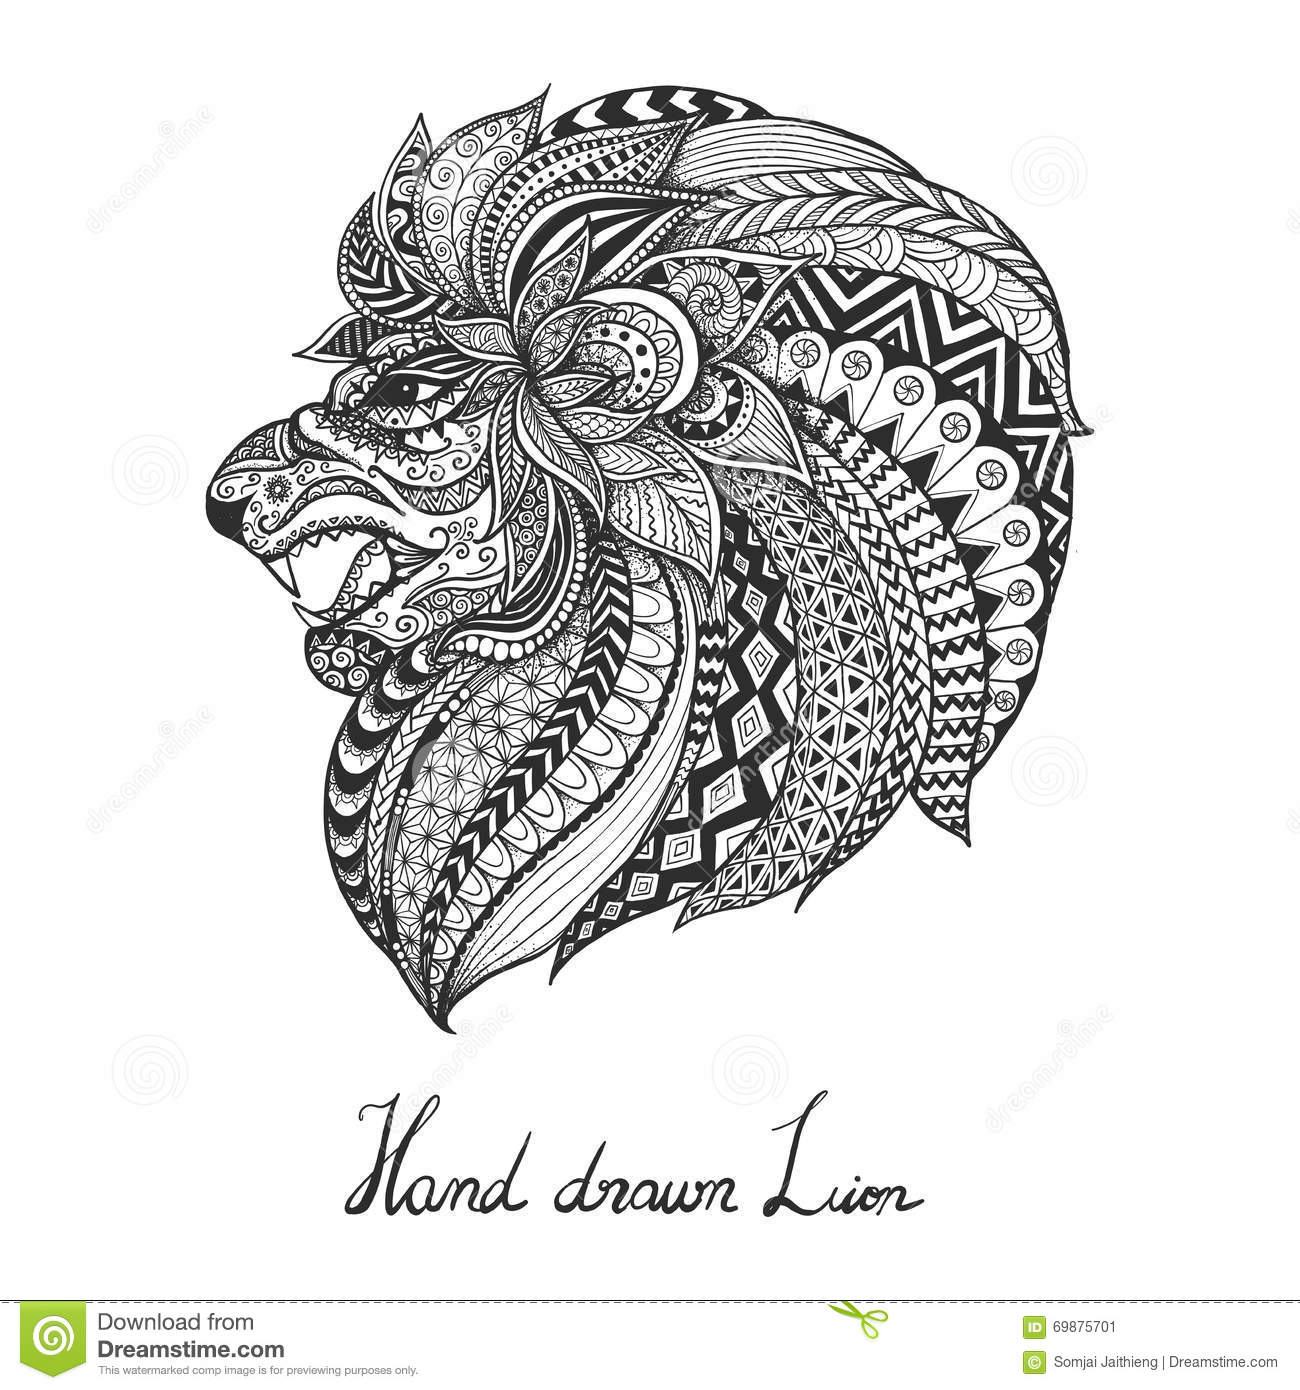 Coloring book for adults lion - Coloring Book For Adults Lion Hand Drawn Lion Zentangle Style